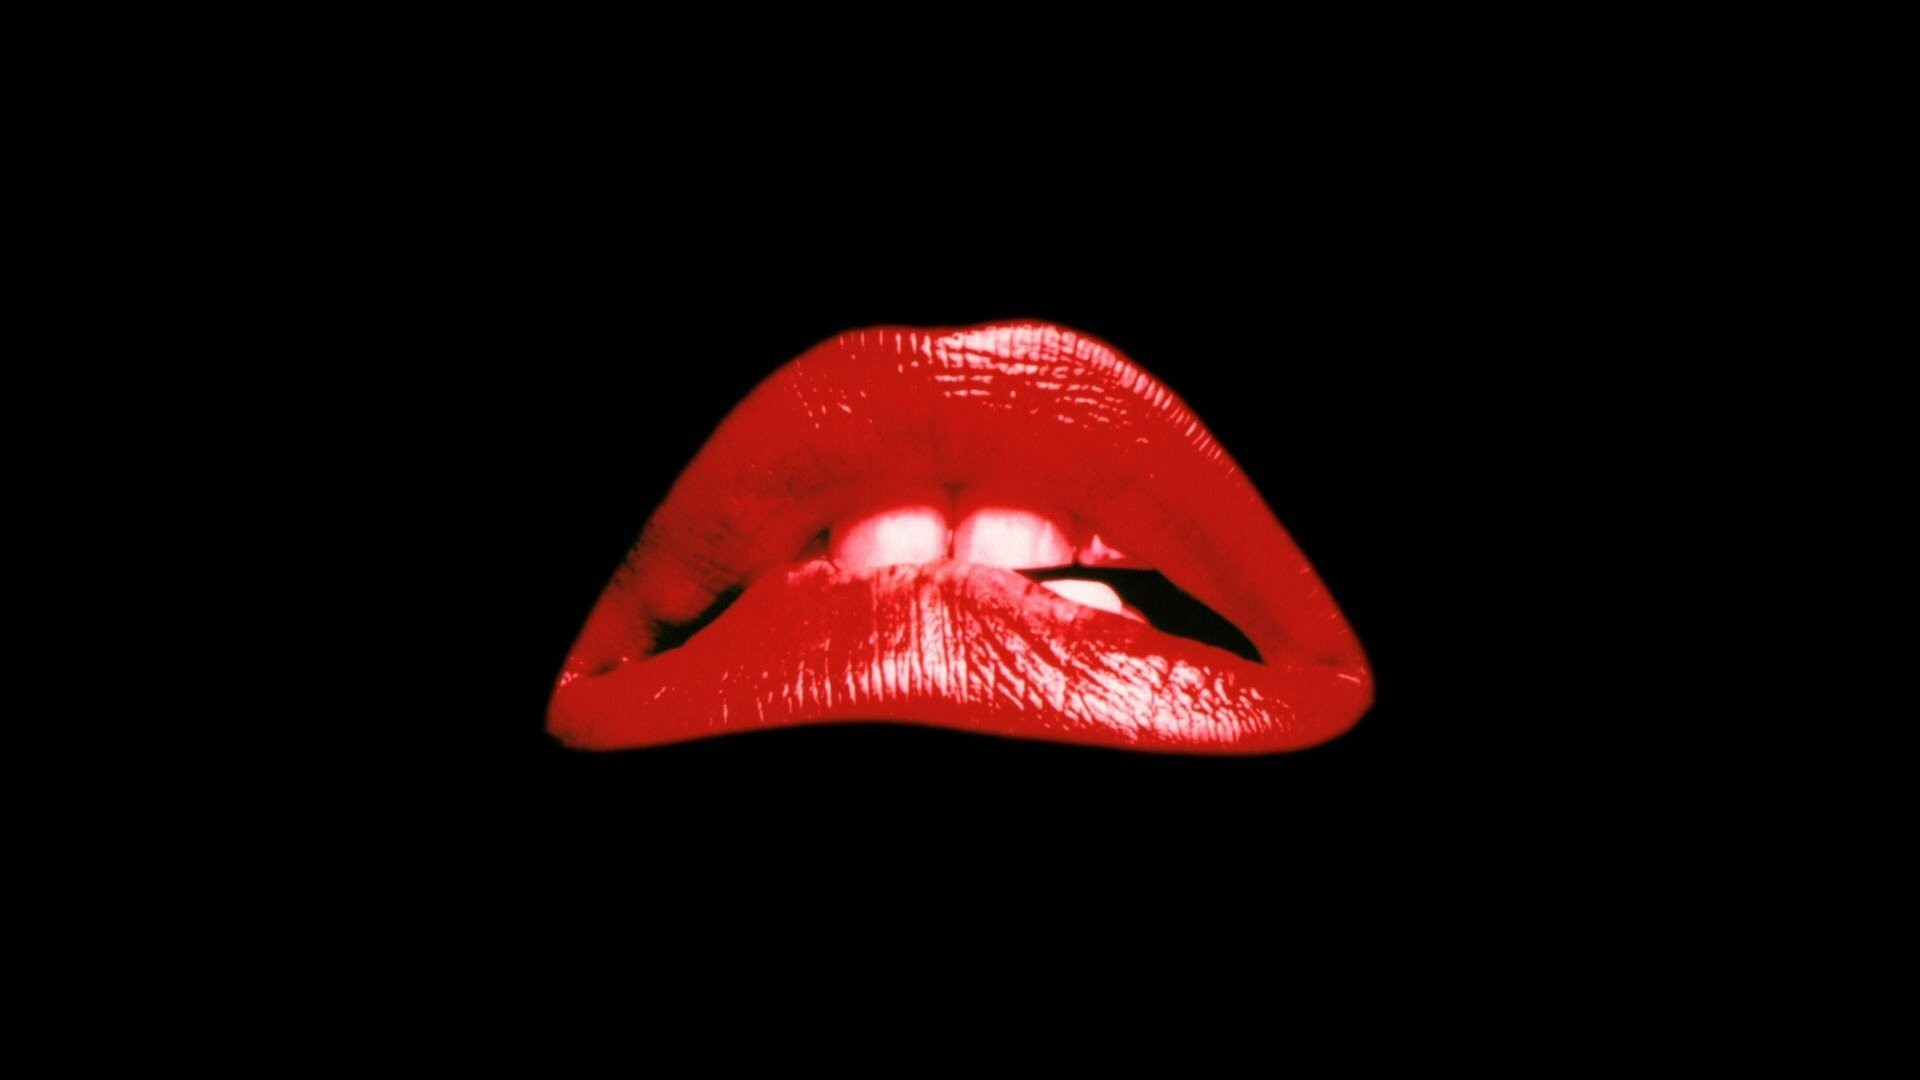 1920x1080 Rocky Horror Picture Show Lips